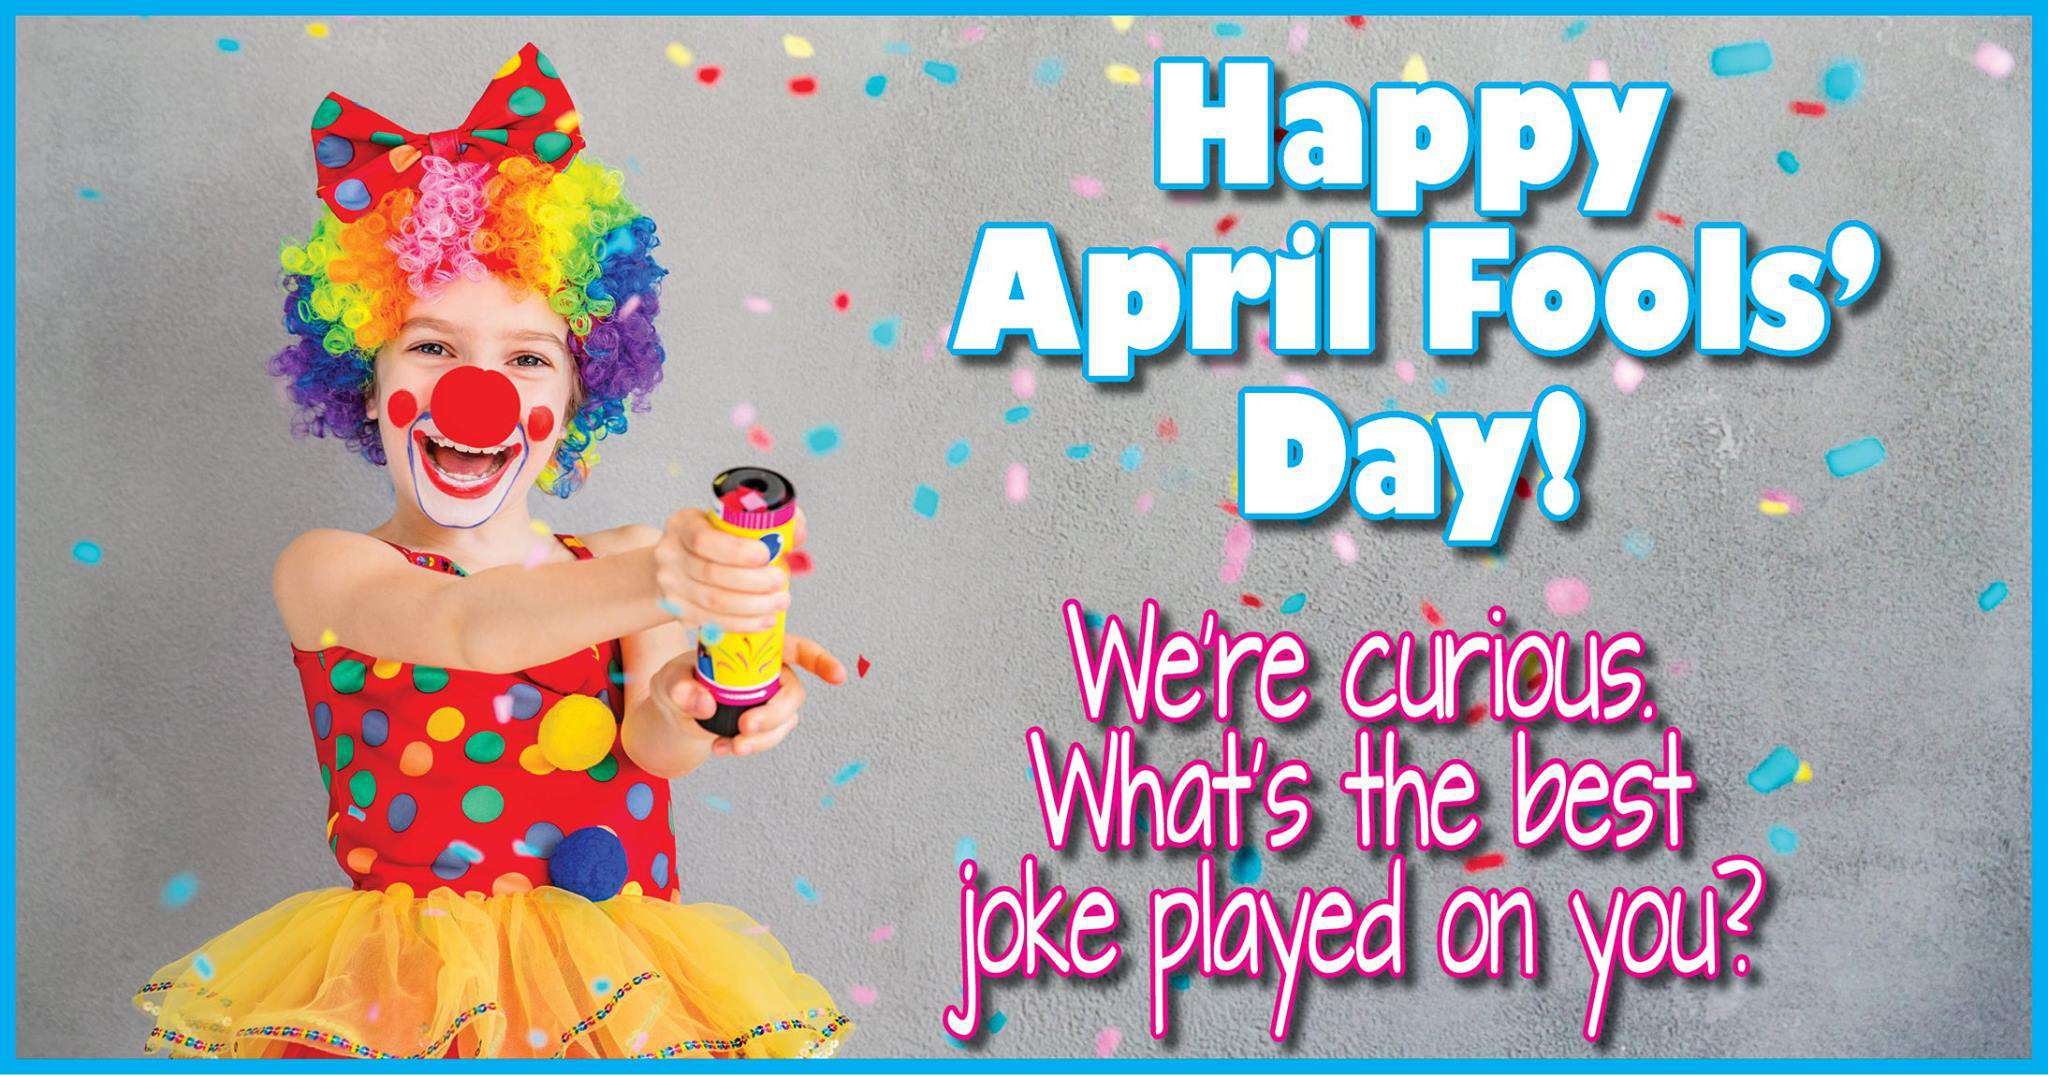 April Fools' Day Wishes For Facebook